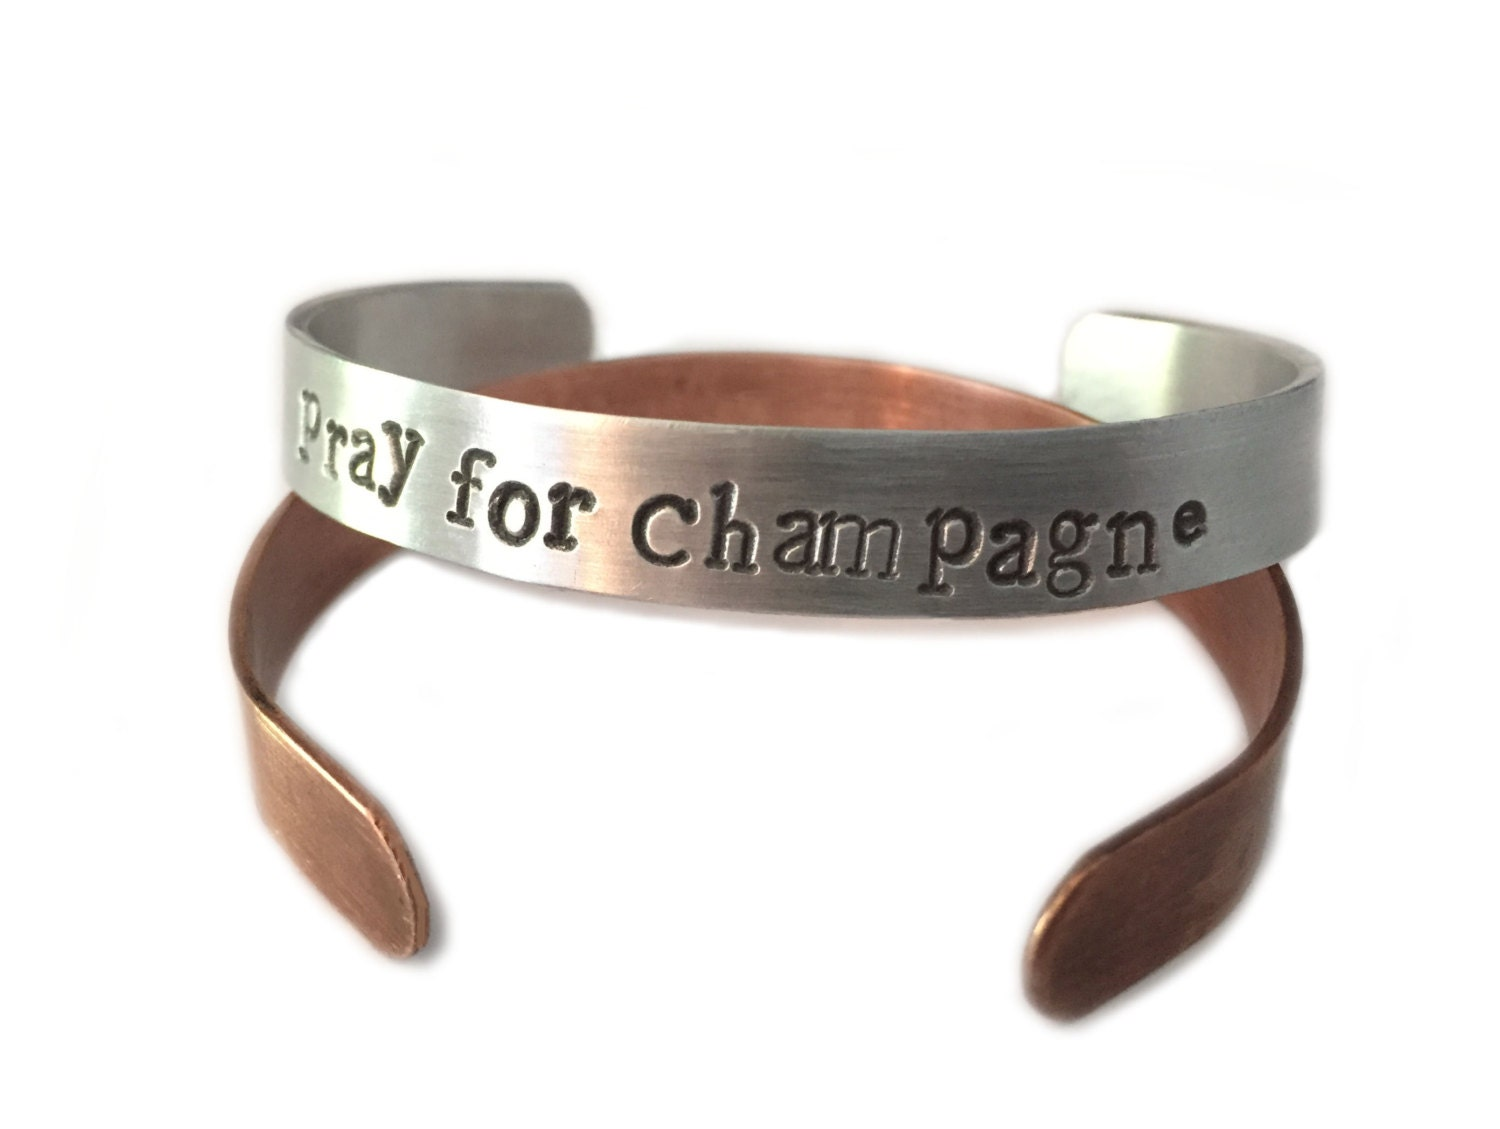 PRAY FOR CHAMPAGNE, champagne, bracelet, cuff bracelet, stamped bracelet, copper jewelry, copper bracelet, wrap bracelet, bangle bracelet